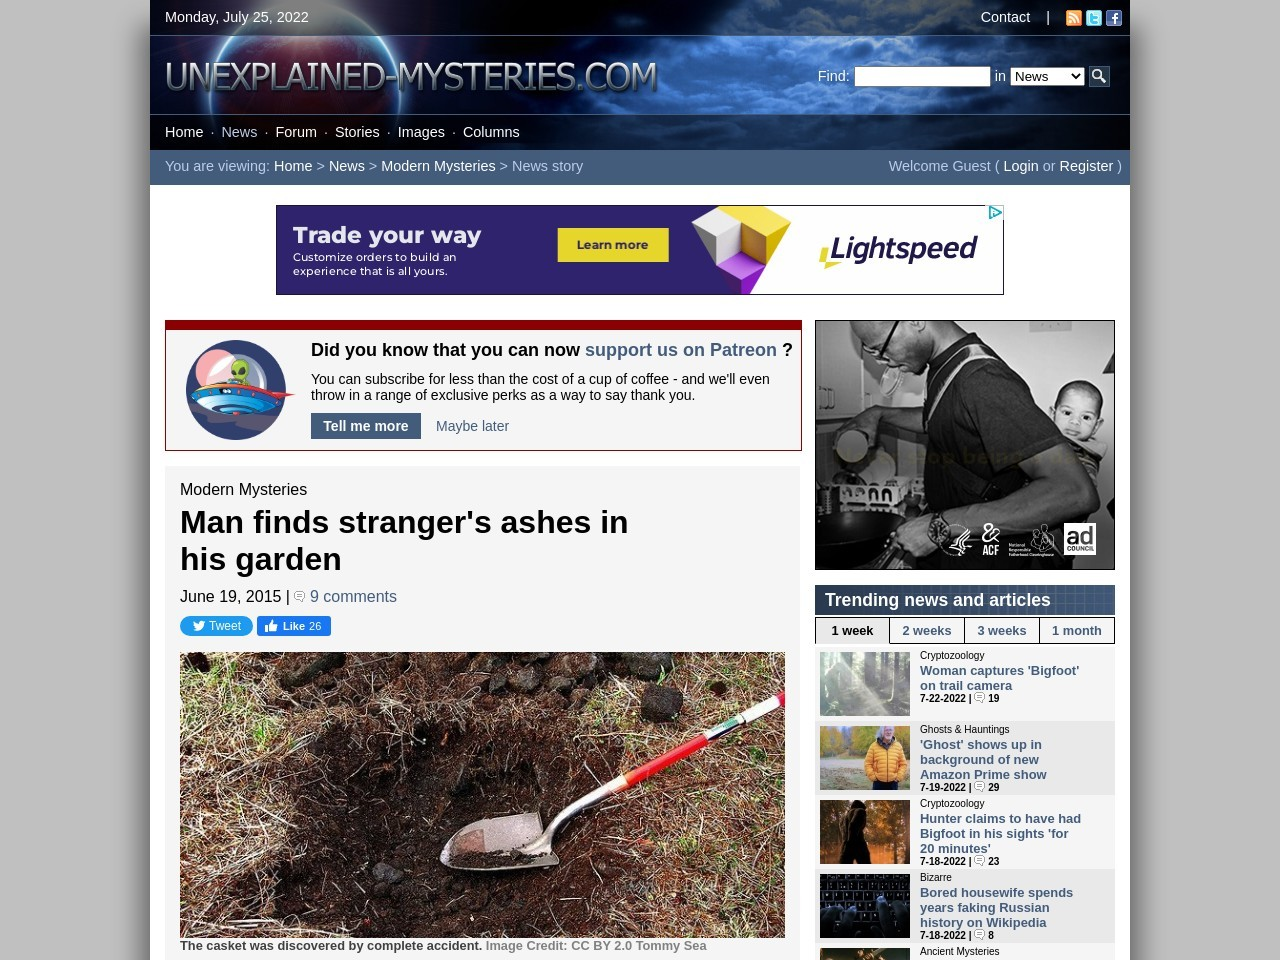 Man finds stranger's ashes in his garden